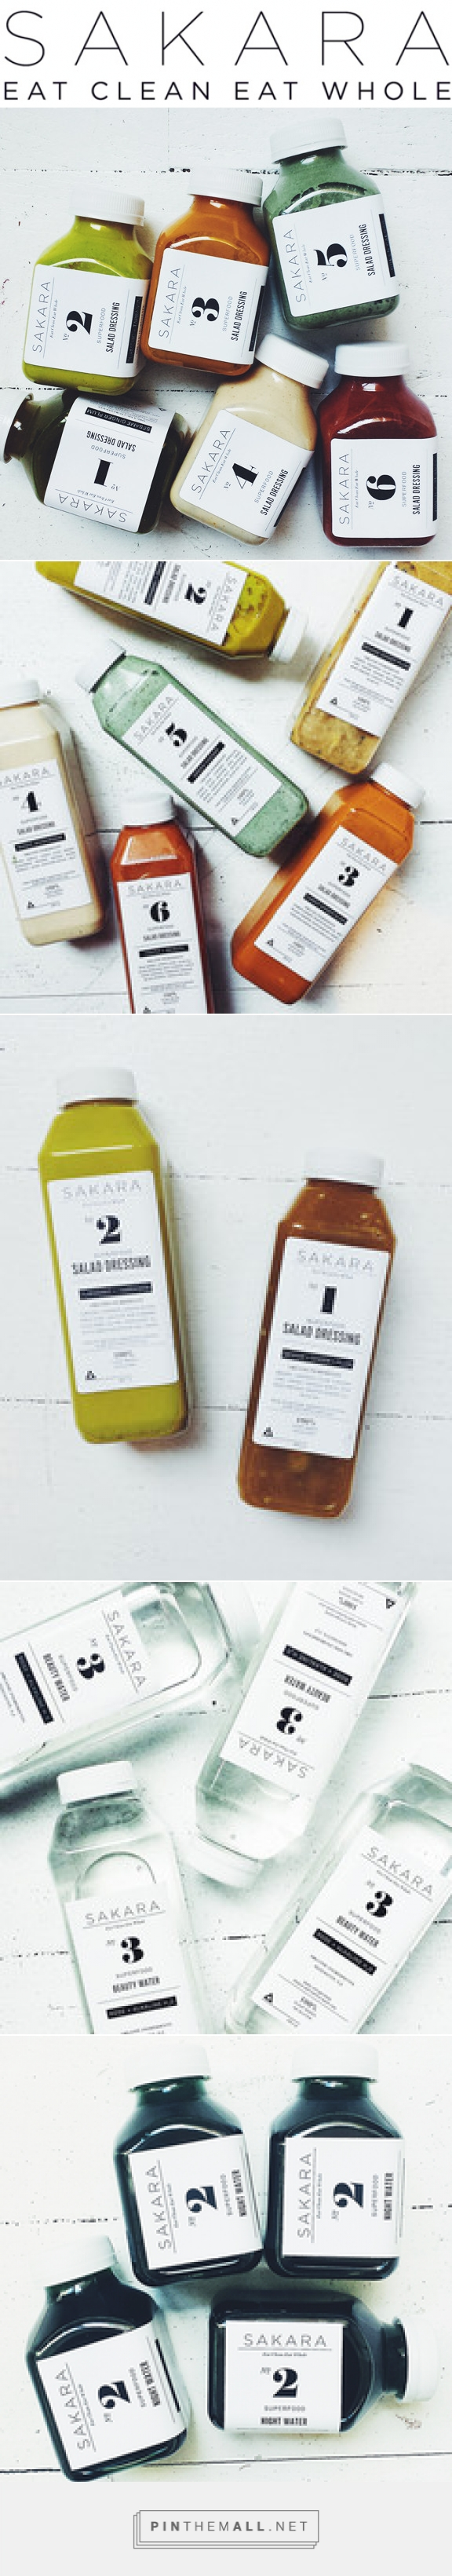 SAKARA Superfood via Sakara Life packaging curated by Packaging Diva PD. These look pretty awesome anybody tried them? created via http://www.sakaralife.com/collections/s-life-clean-boutique/products/sakara-superfood-salad-dressings-set?utm_source=Sakara+Newsletter&utm_campaign=3b65ef6a17-Sneak_Peek_3_53_5_2015&utm_medium=email&utm_term=0_fafd5ad52b-3b65ef6a17-220215997&mc_cid=3b65ef6a17&mc_eid=7d95deedde